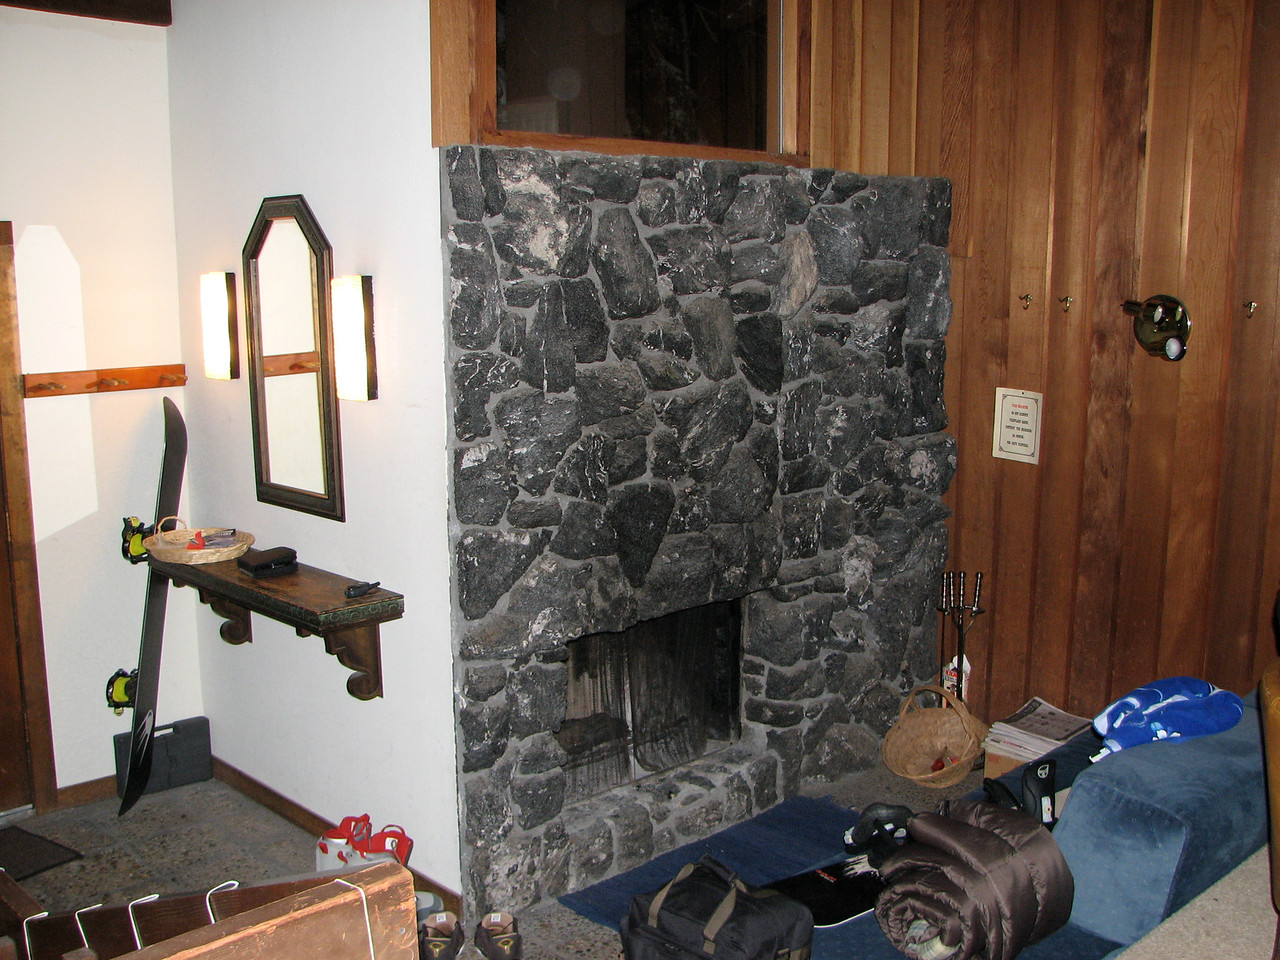 2007 01 05 Fri - Scott Chow's cabin - Foyer & fireplace